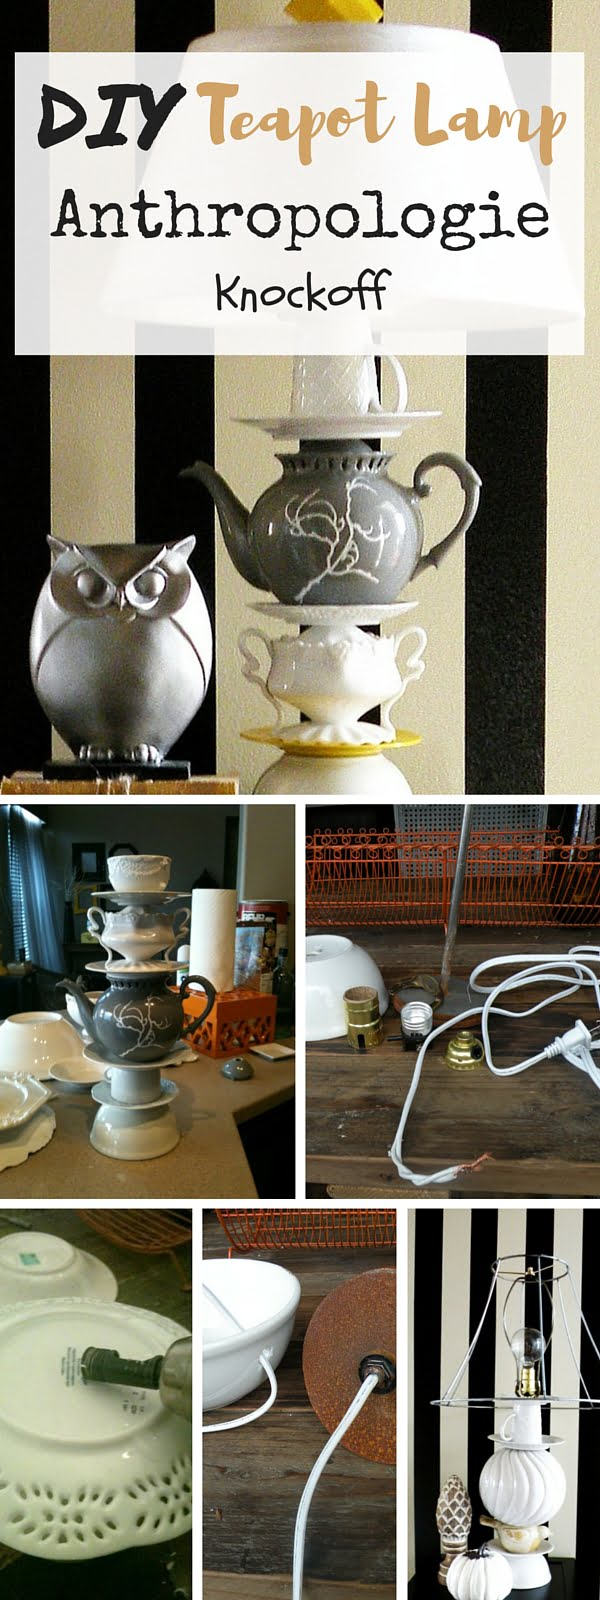 Check out the tutorial:  Anthropologie Teapot Lamp Knockoff